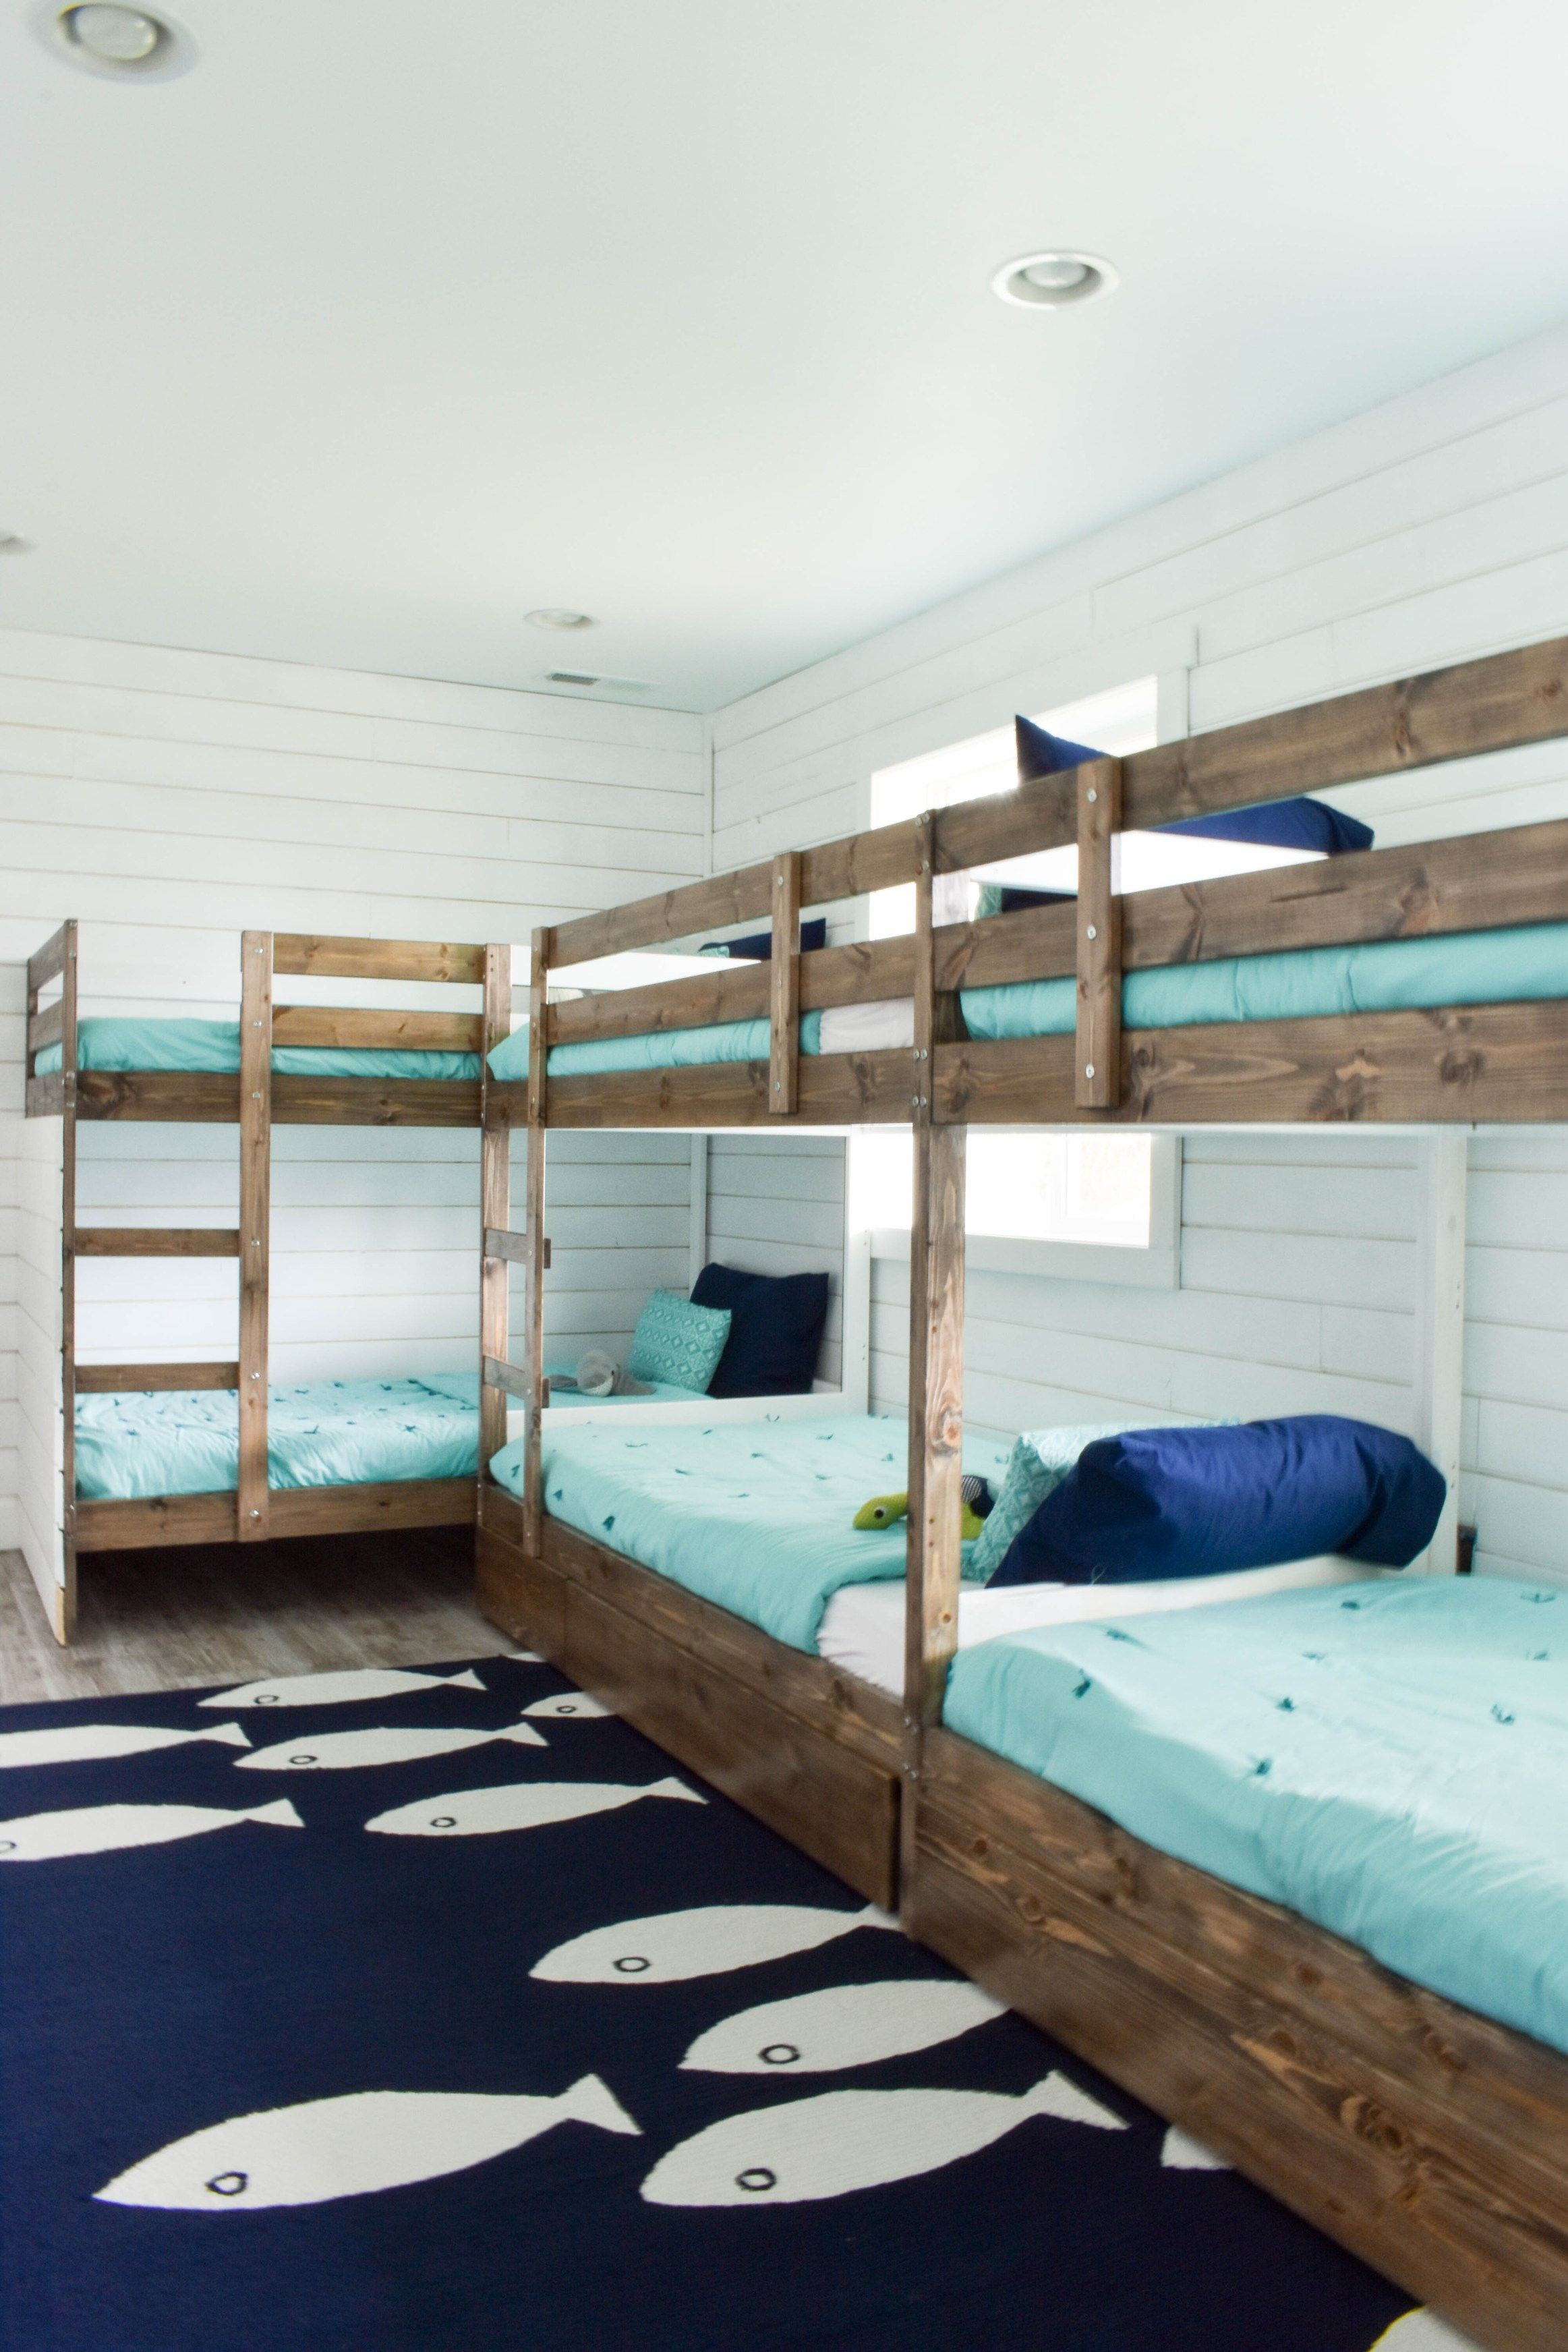 Loft bed plans full size  Beach House Bunk Room Reveal  Dream Home  Pinterest  Bunk rooms